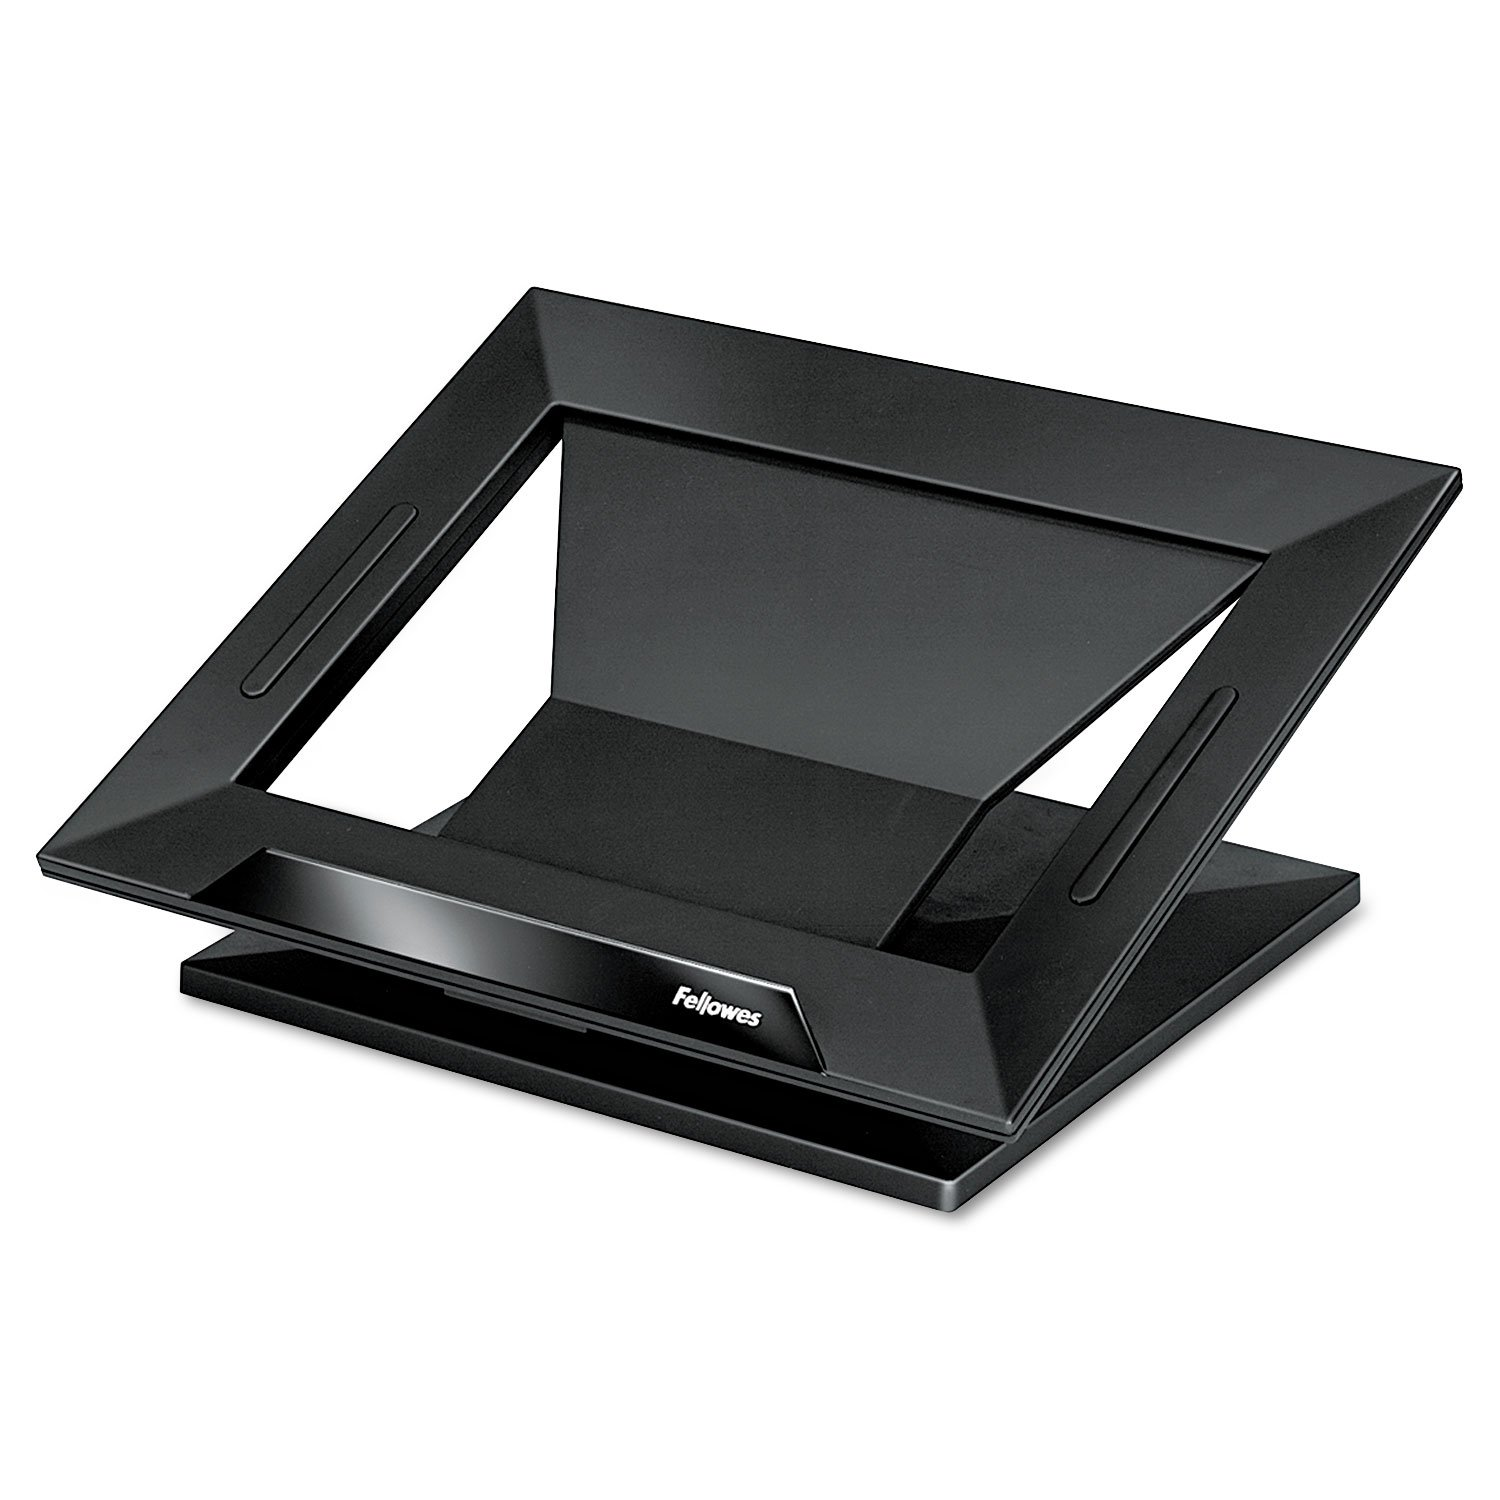 Fellowes Notebook Stand - Up to 17quot; Screen Support - 25 lb Load Capacity - 4quot; Height x 13.2quot; Width x 11.2quot; Depth - Black, Black by Fellowes (Image #1)